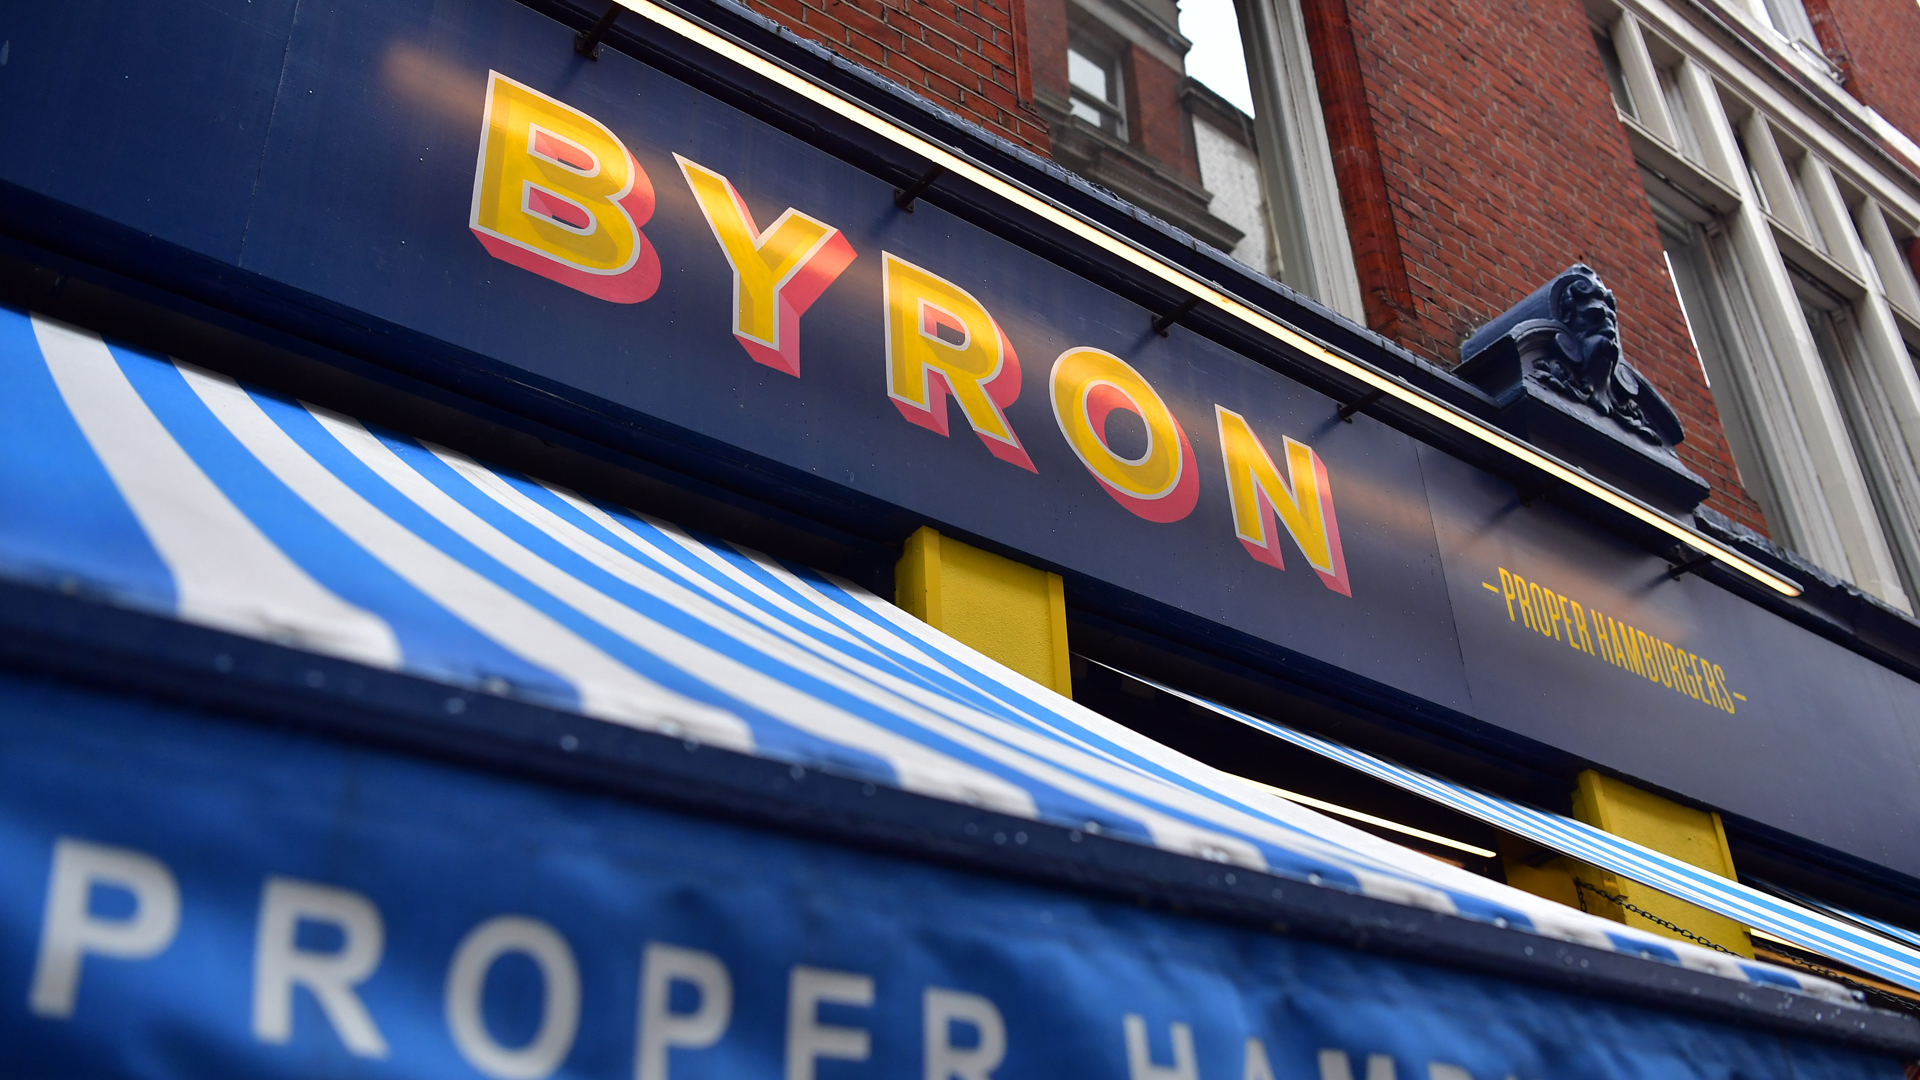 A Byron burger restaurant sign is pictured on August 2, 2016 in London, England.(Credit: Carl Court/Getty Images)